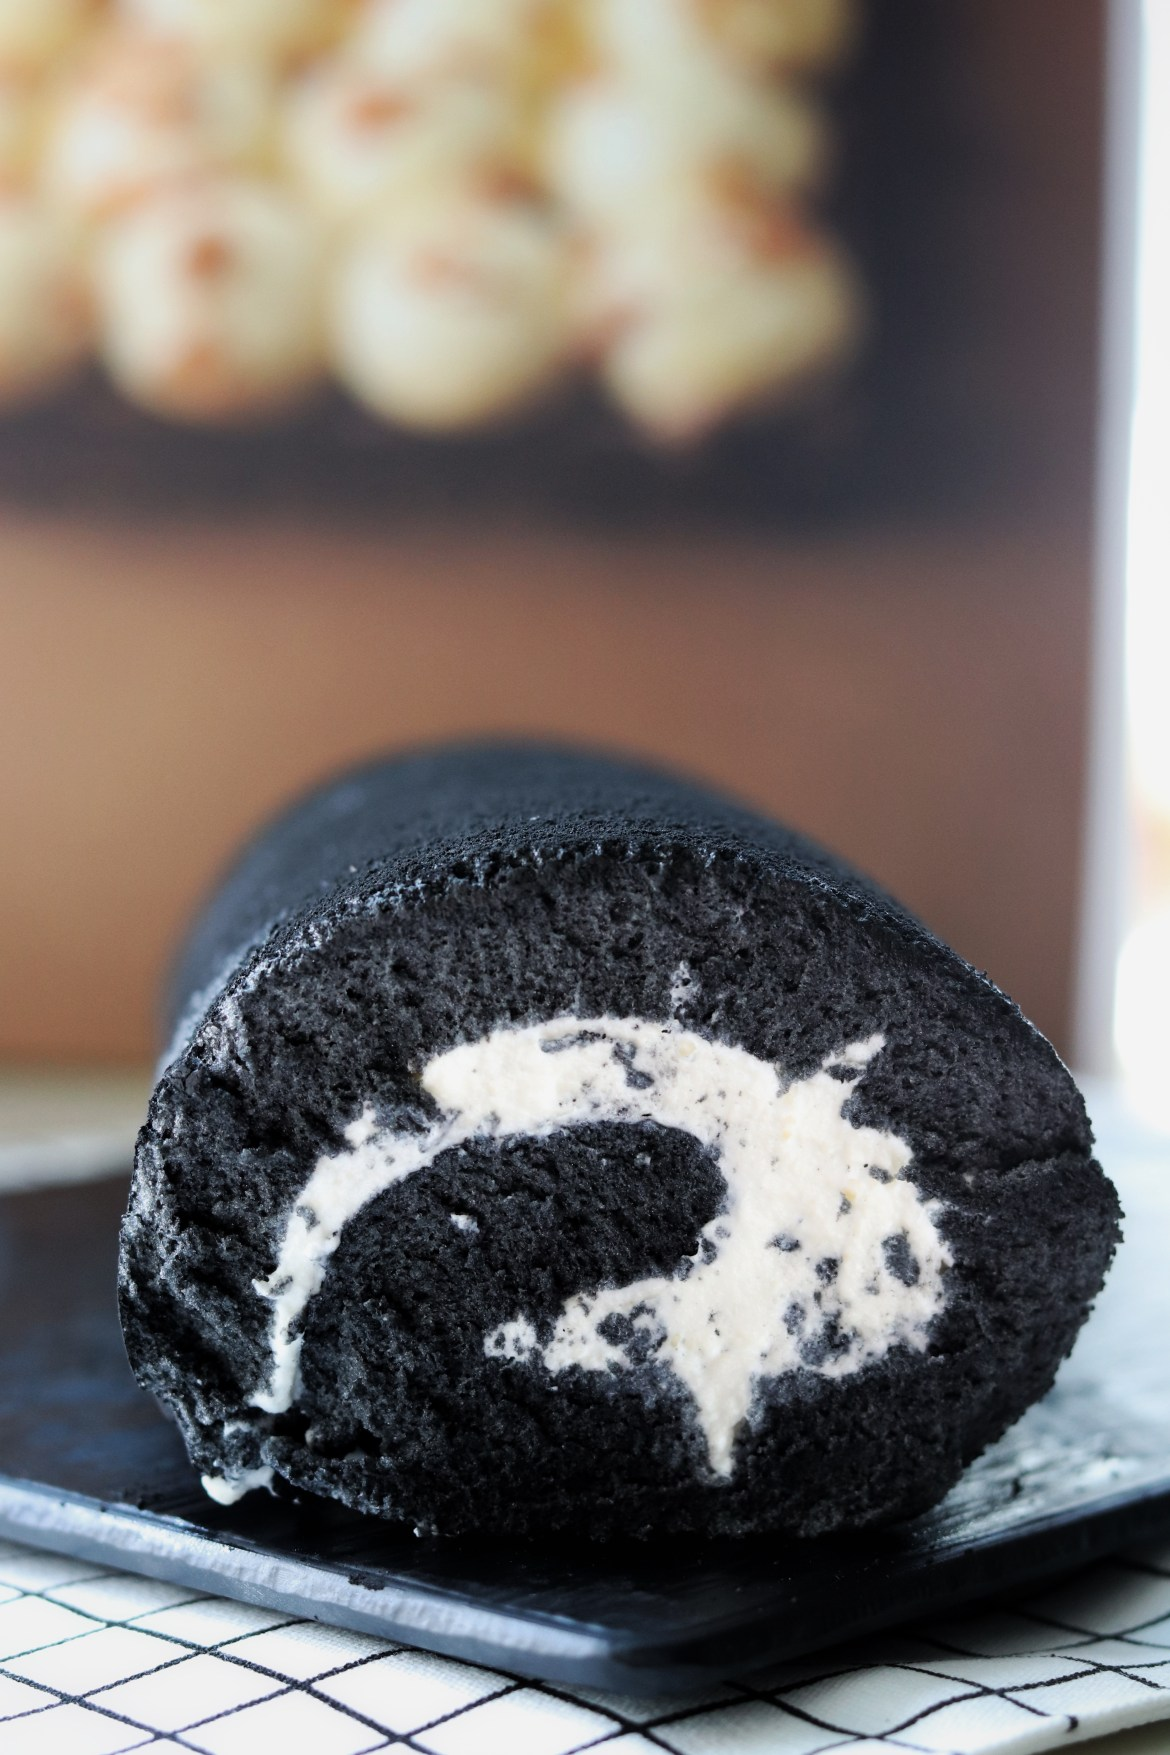 Charcoal Black Sesame Cake Roll